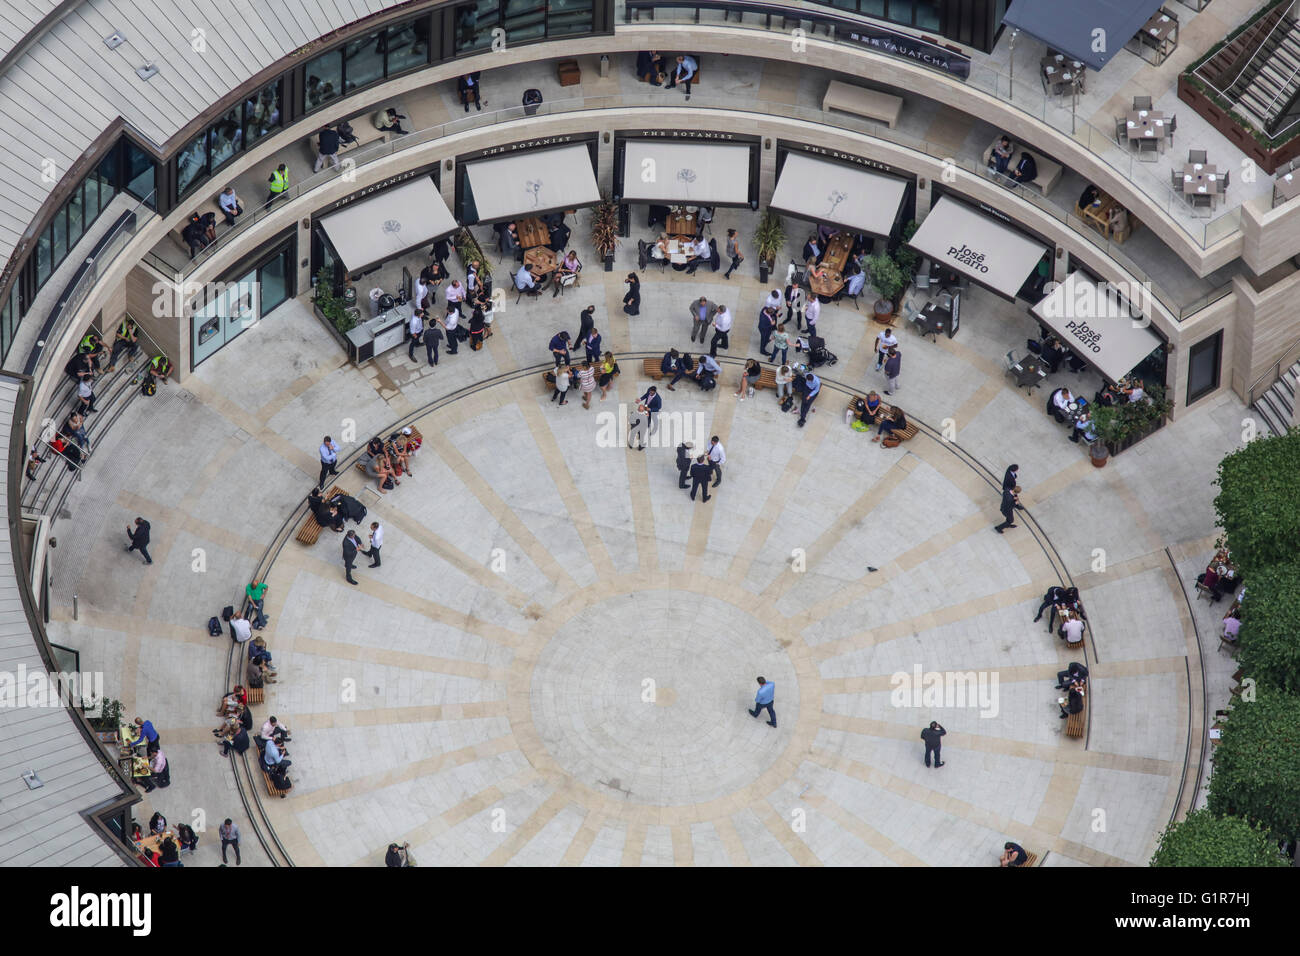 A close up aerial view of Broadgate Circle in the City of London - Stock Image